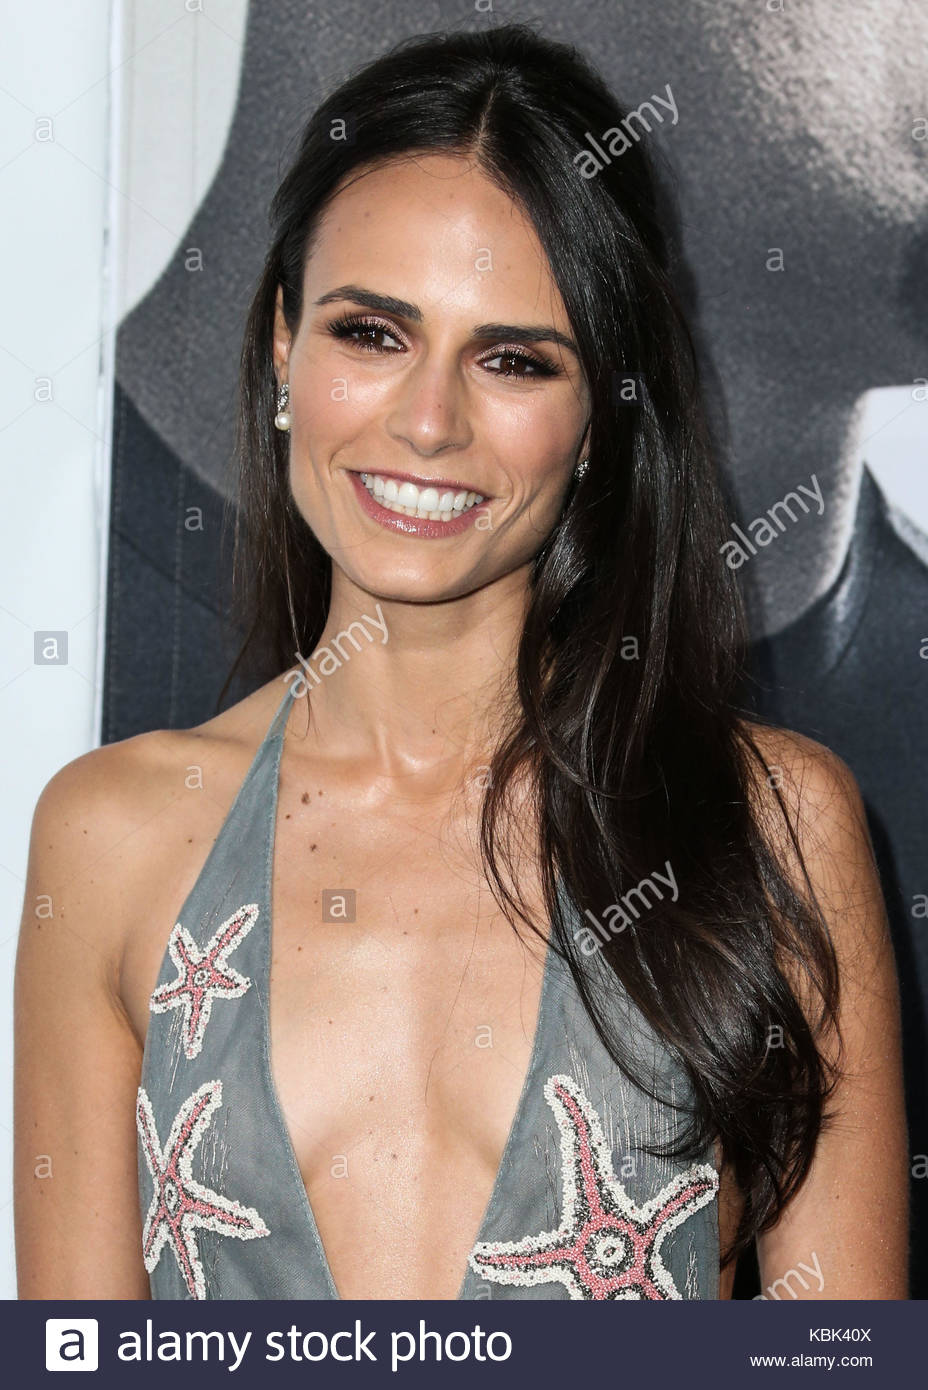 Excellent Jordana brewster cleavage with